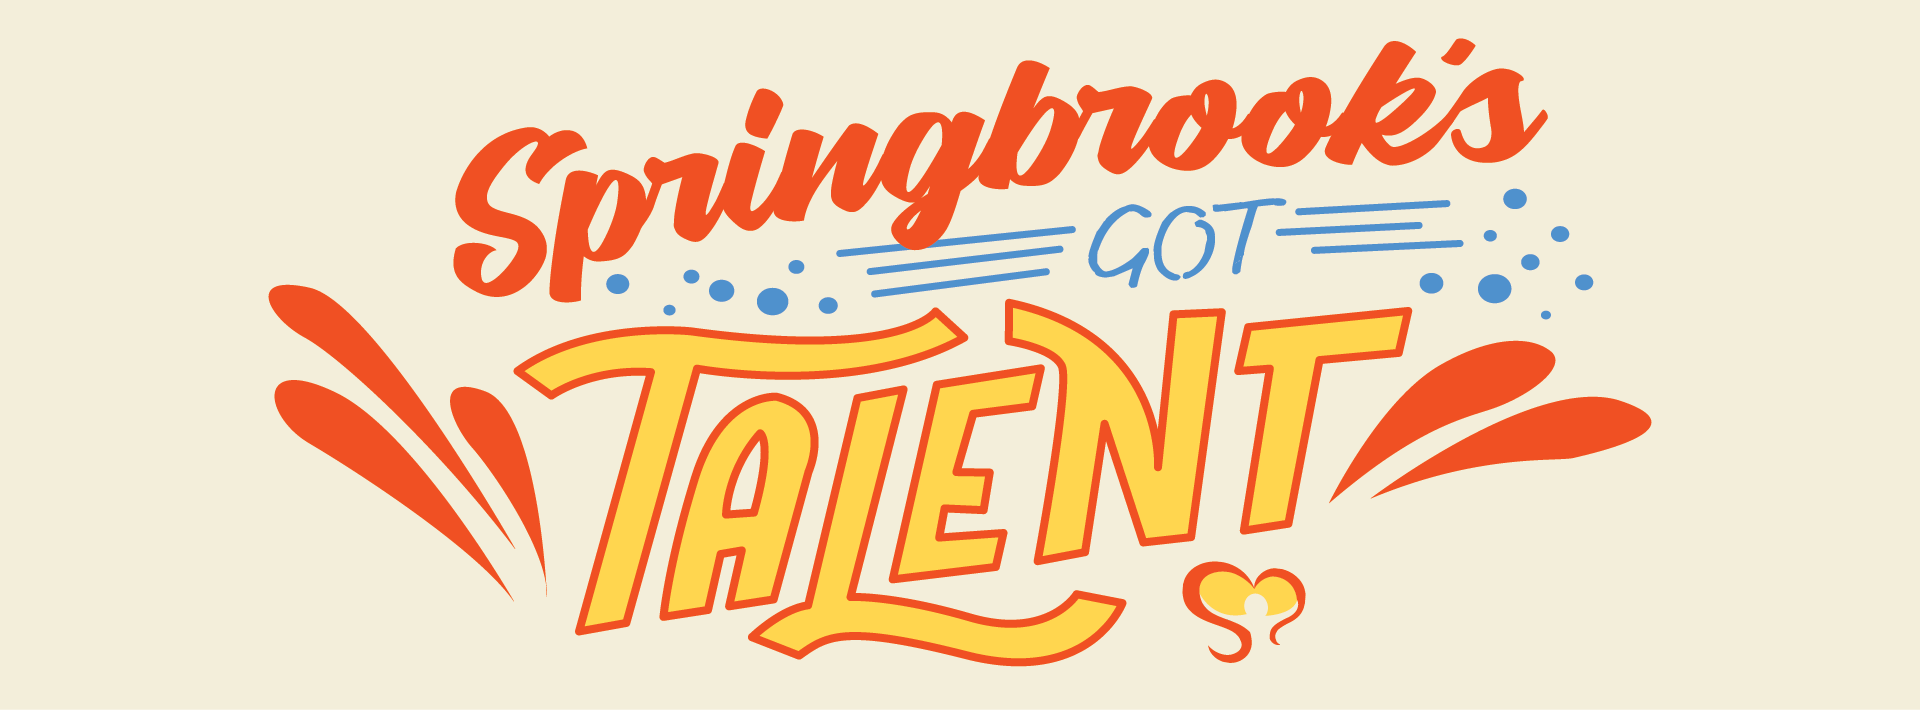 2021 Email Banner SpringbrooksGotTalent2 - Social Seven - A Full Week of Ideas and Inspirations